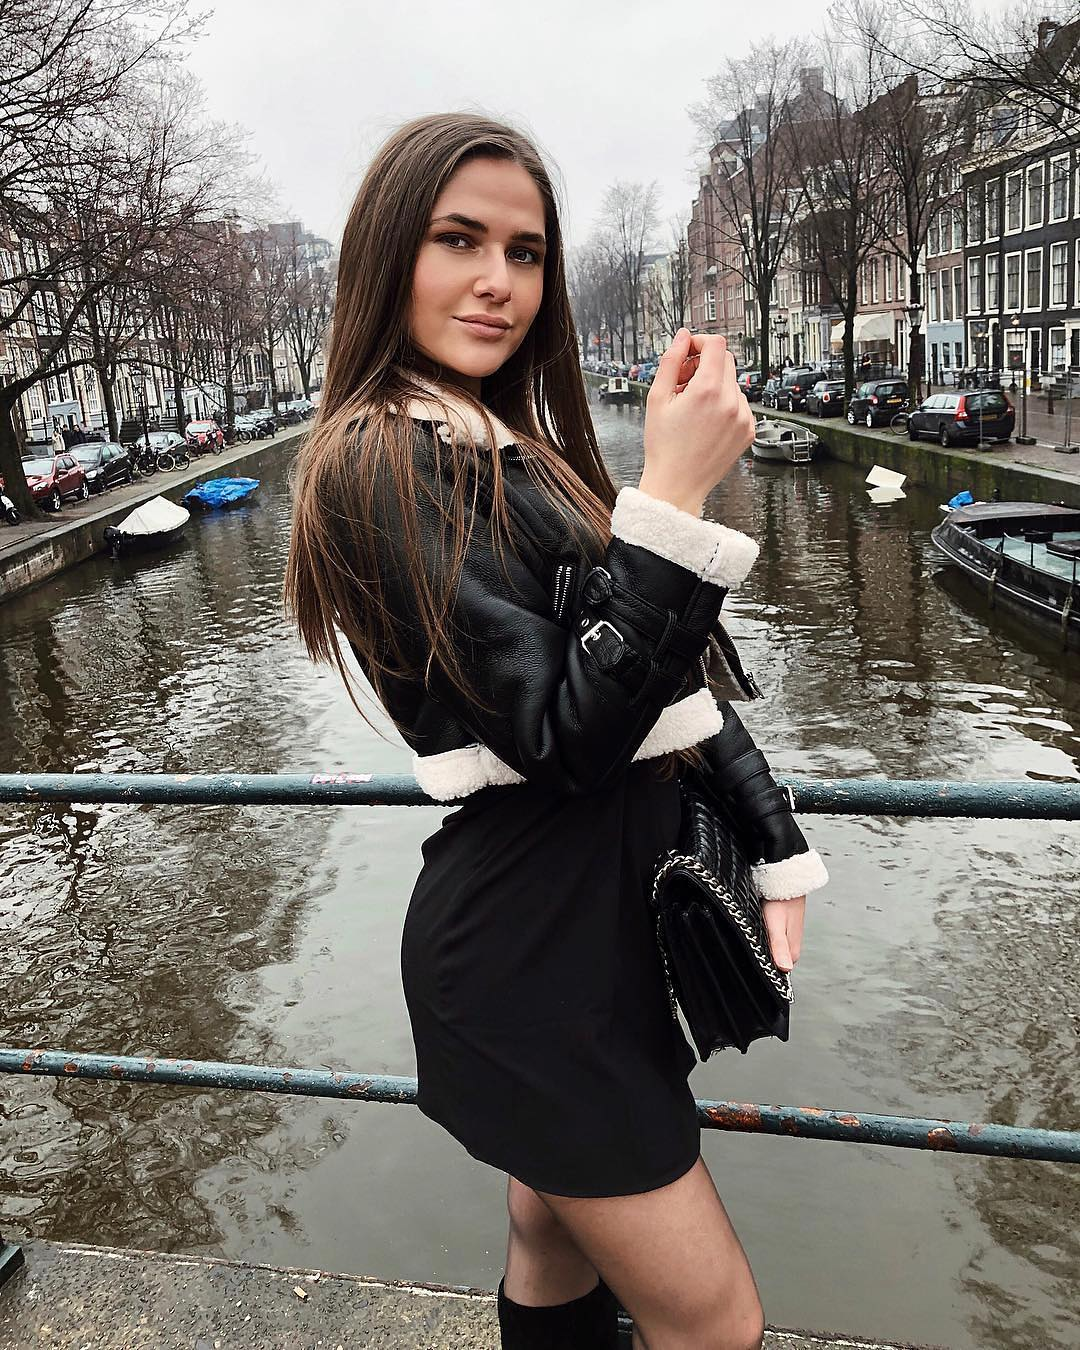 Short cut shearling aviator jacket in black and LBD for Amsterdam Walk In Fall 2021